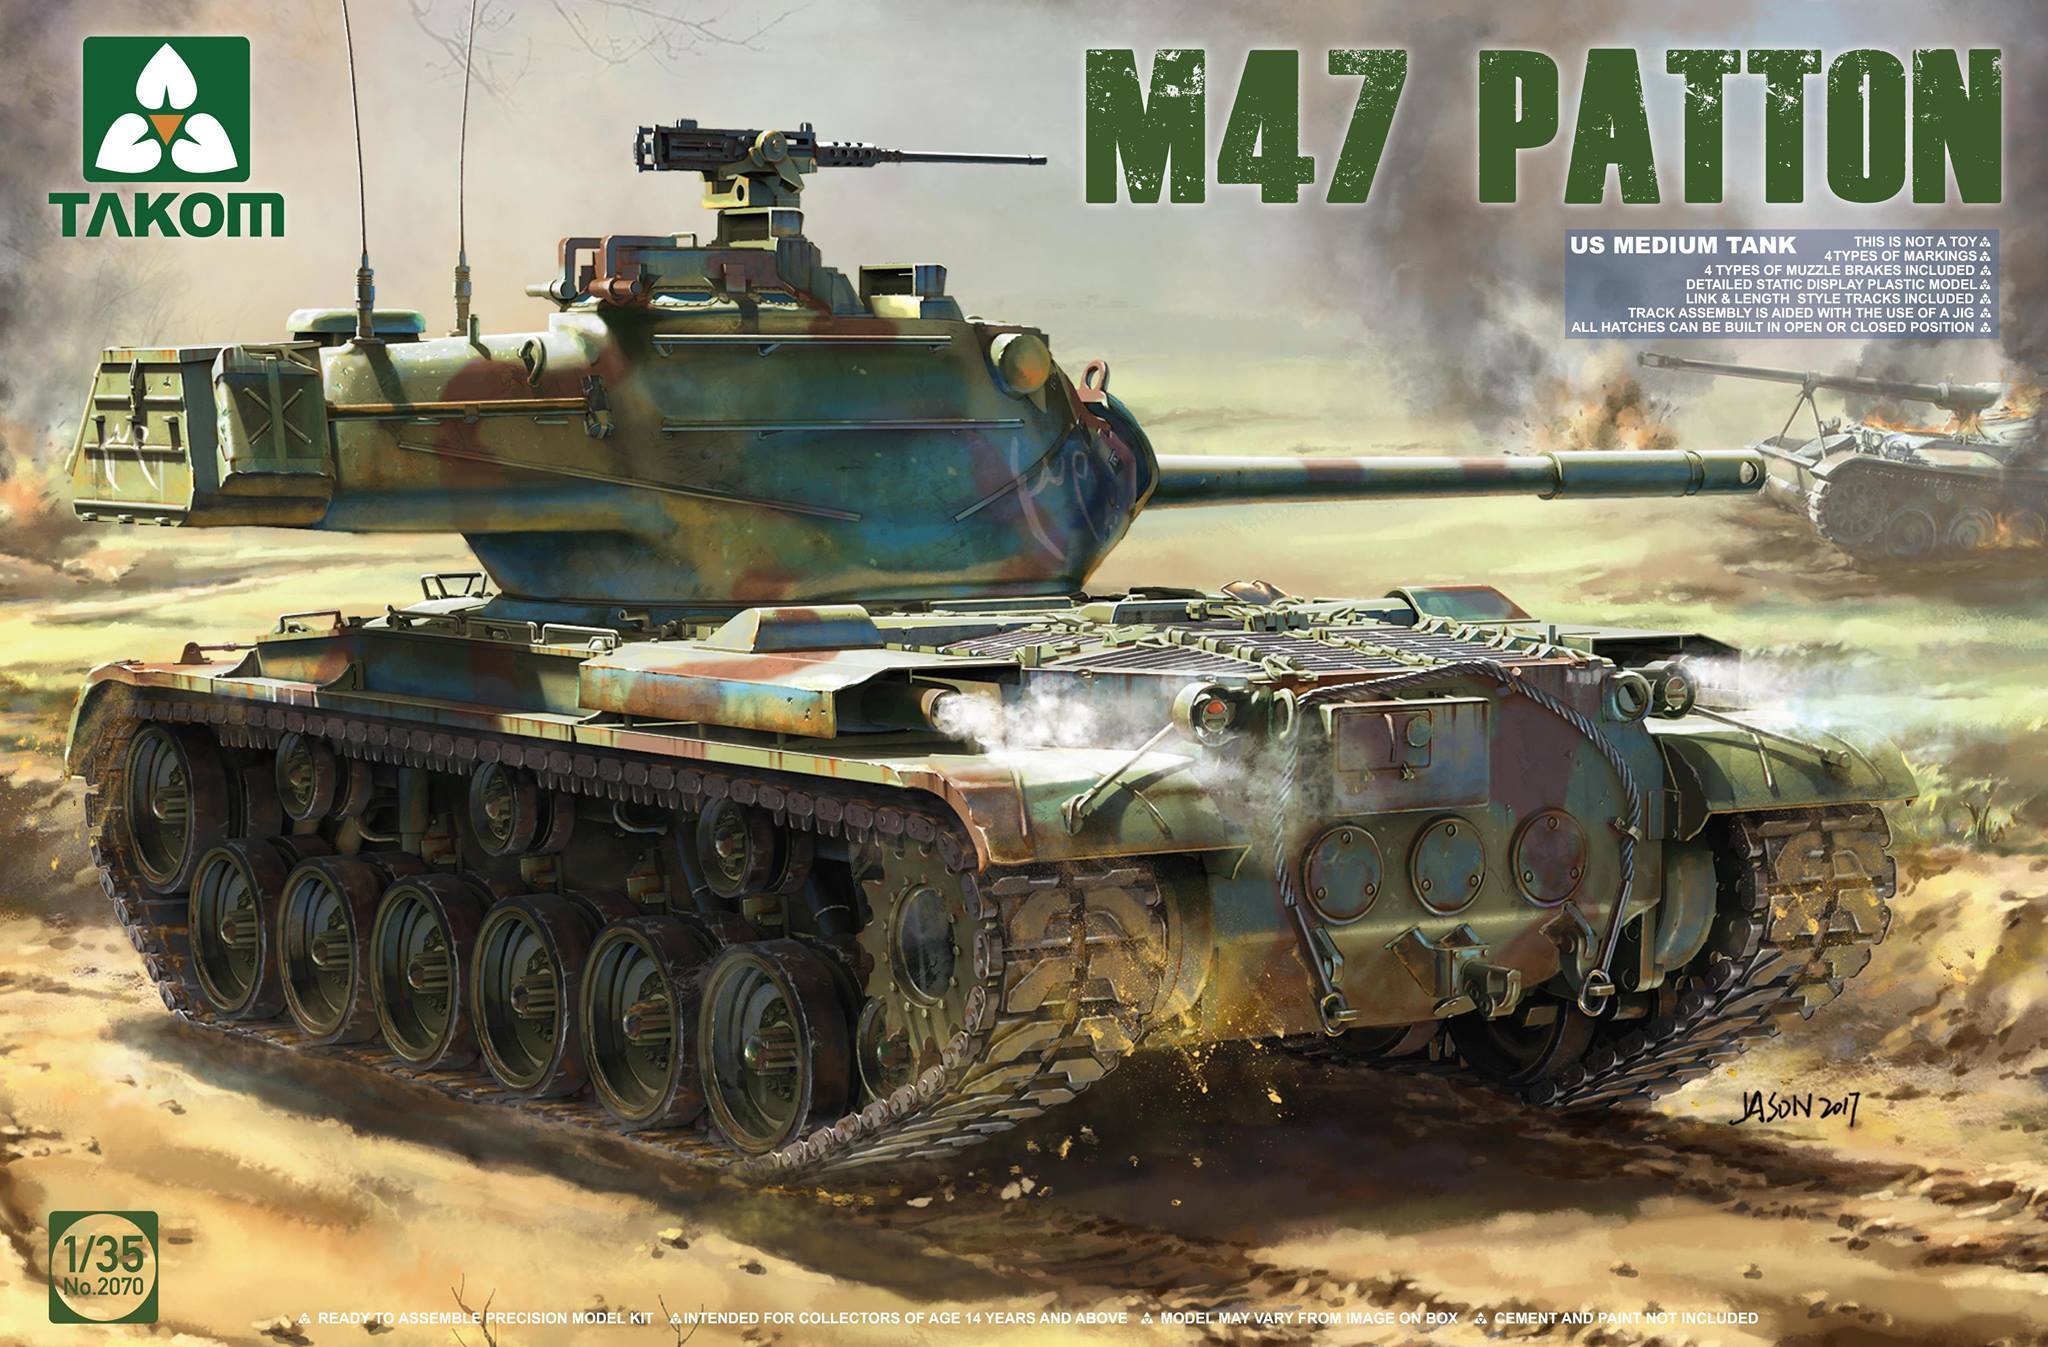 US Medium Tank M47 Patton